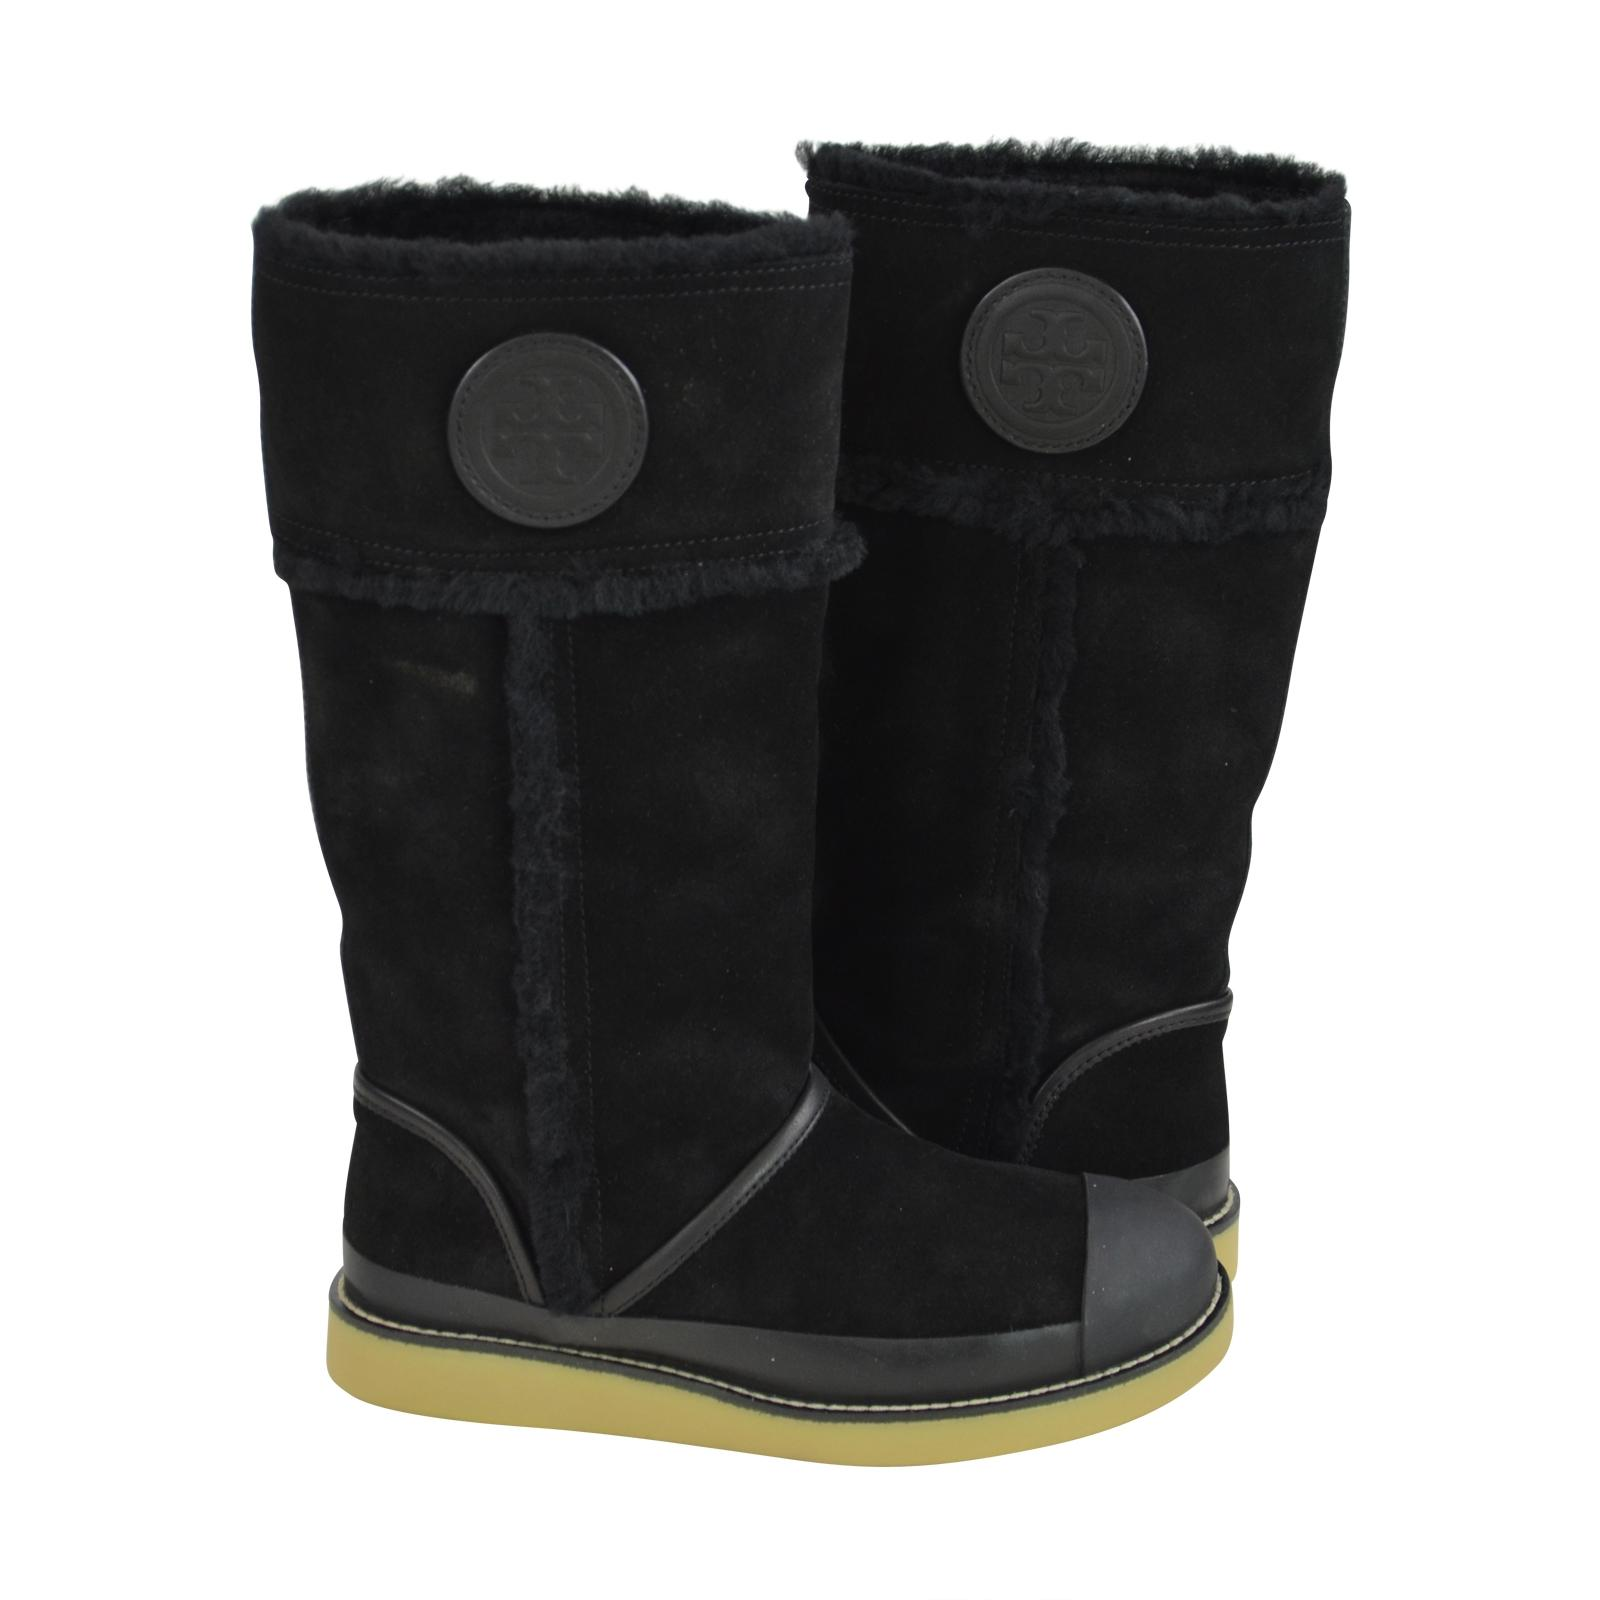 d207bed9bd9a ... Tory Burch Burch Burch Black Nadine Mid Shaft Suede Boots Booties Size  US 6 Regular ...